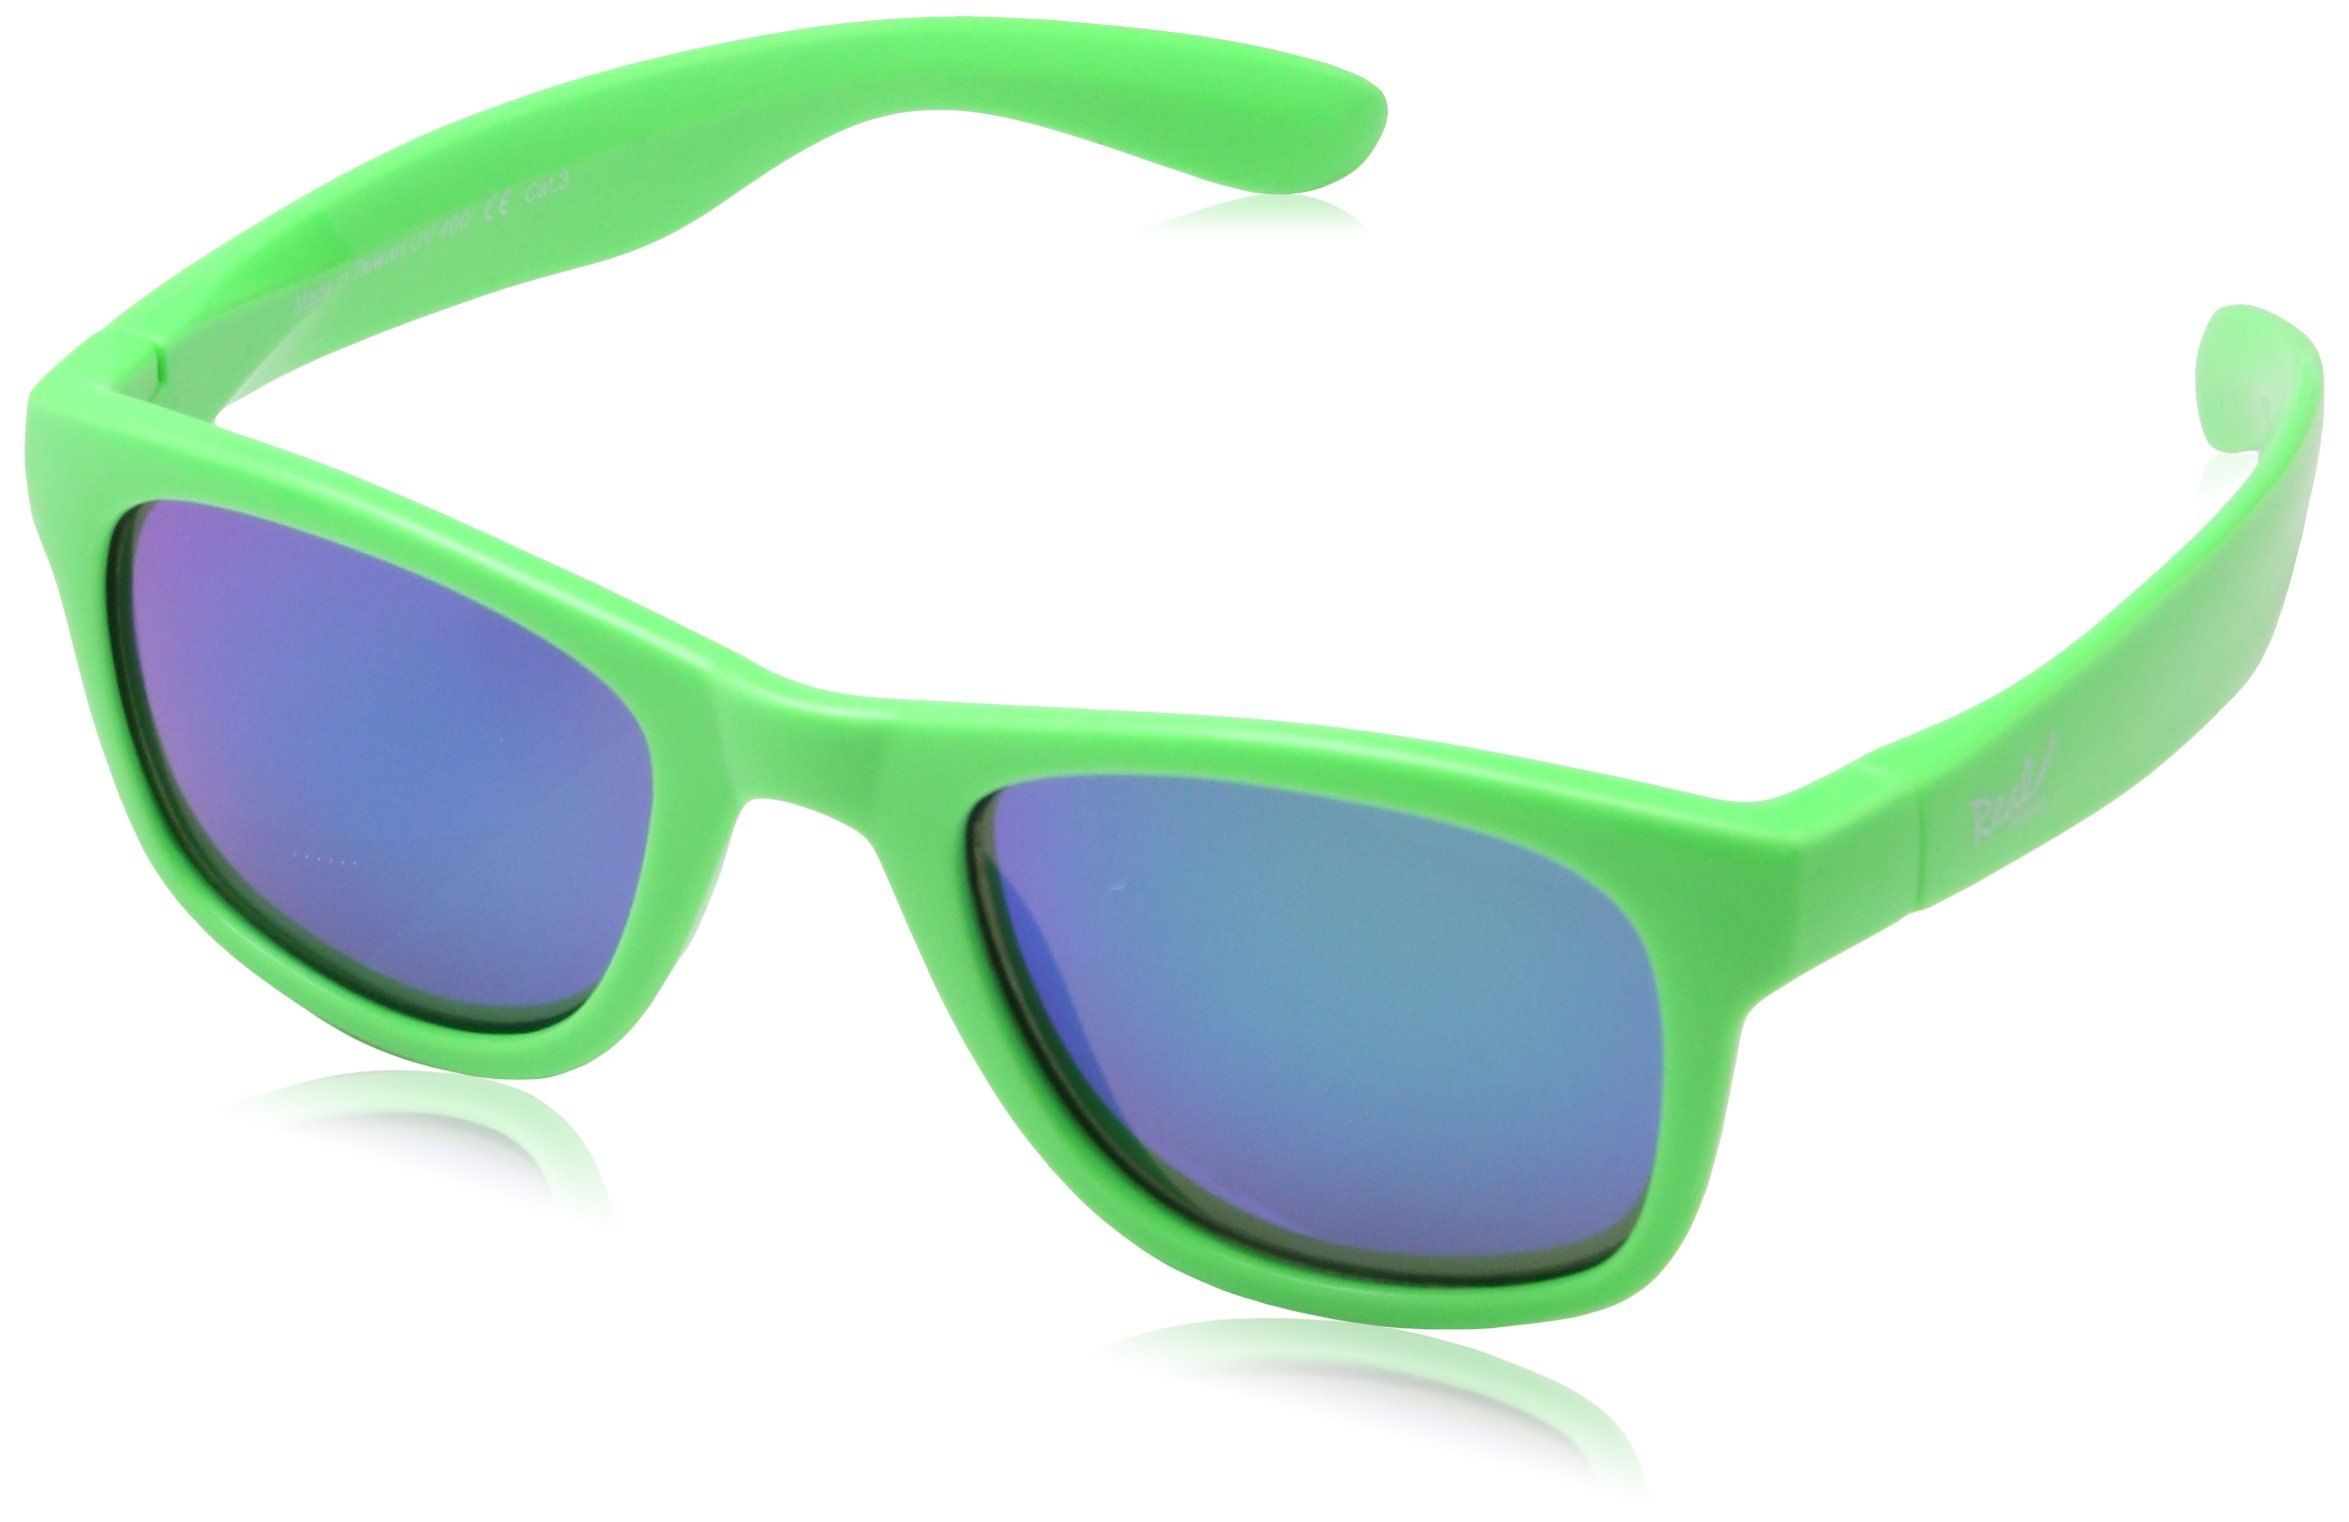 Real Kids Shades Surf Sunglasses for Toddler, Kid, Youth - 100% UVA UVB Protection, Polycarbonate Mirror Lenses, Unbreakable, Iconic Style